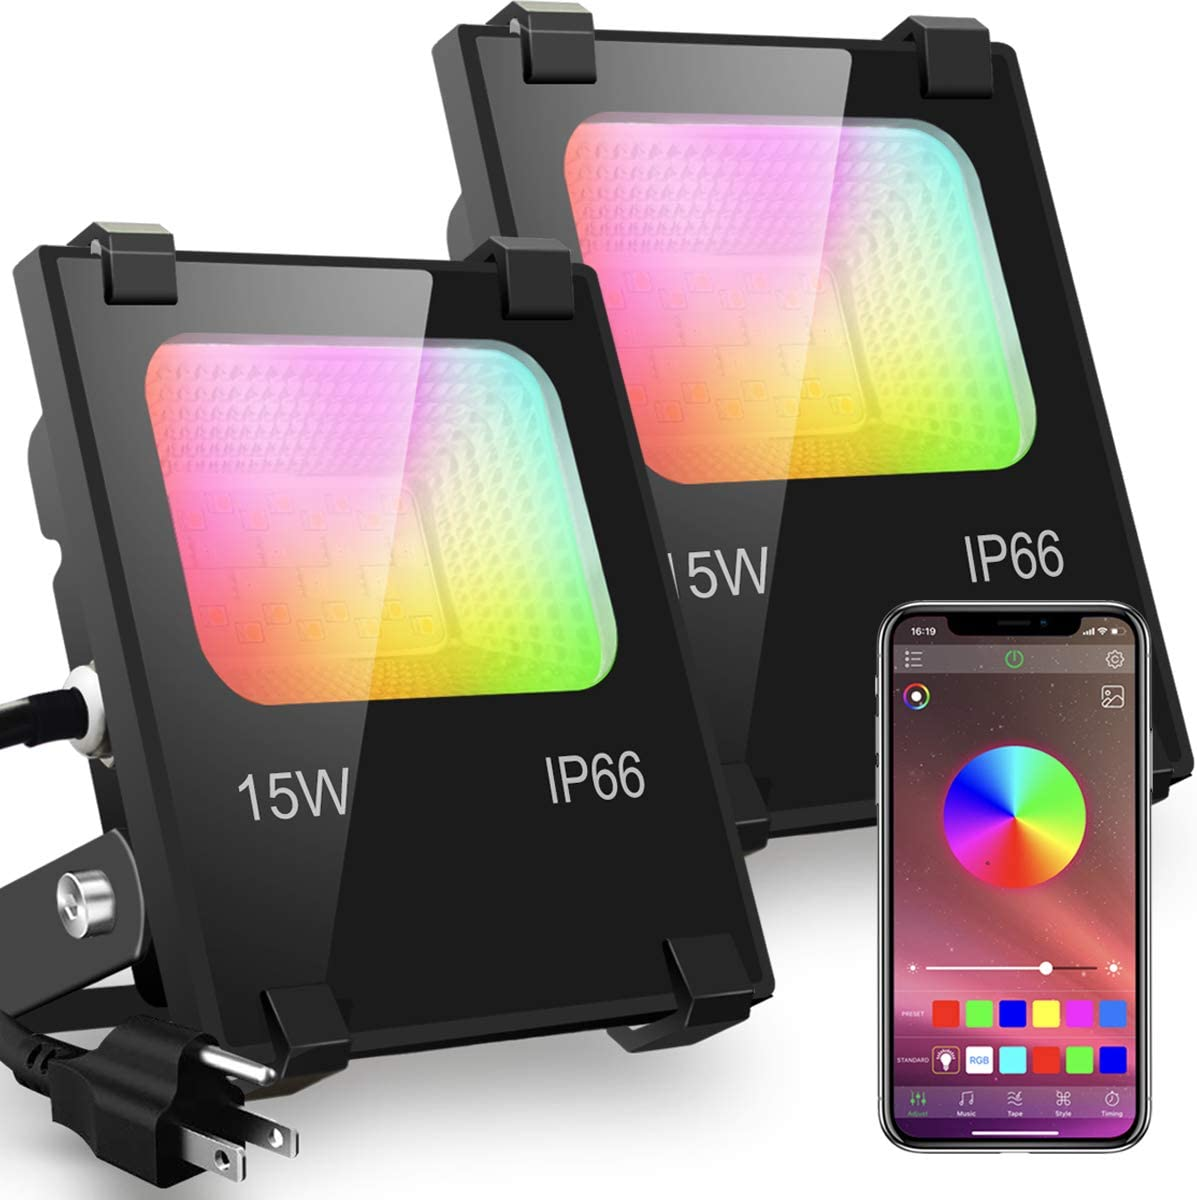 LED Flood Light Outdoor, 15W RGB Color Changing, Bluetooth Smart Floodlights RGBW 2700K Warm White & 16 Million Colors, 20 Modes, Grouping, Timing, IP66 Waterproof, Controlled by Phone (2 Pack)